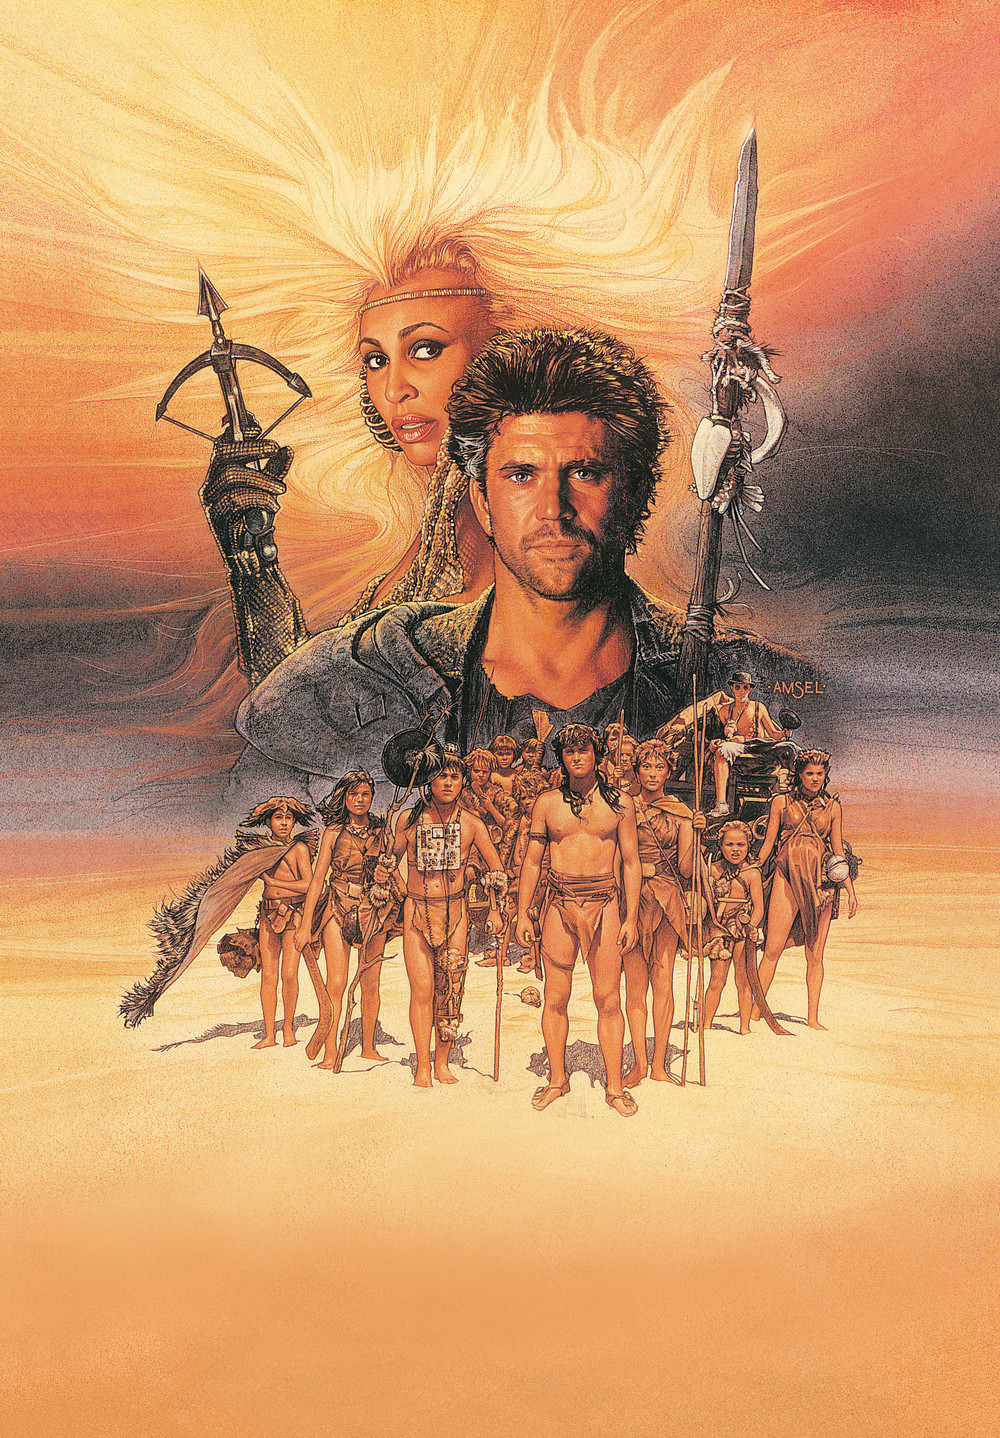 Mad Max - Beyond Thunderdome (1985) - George Miller